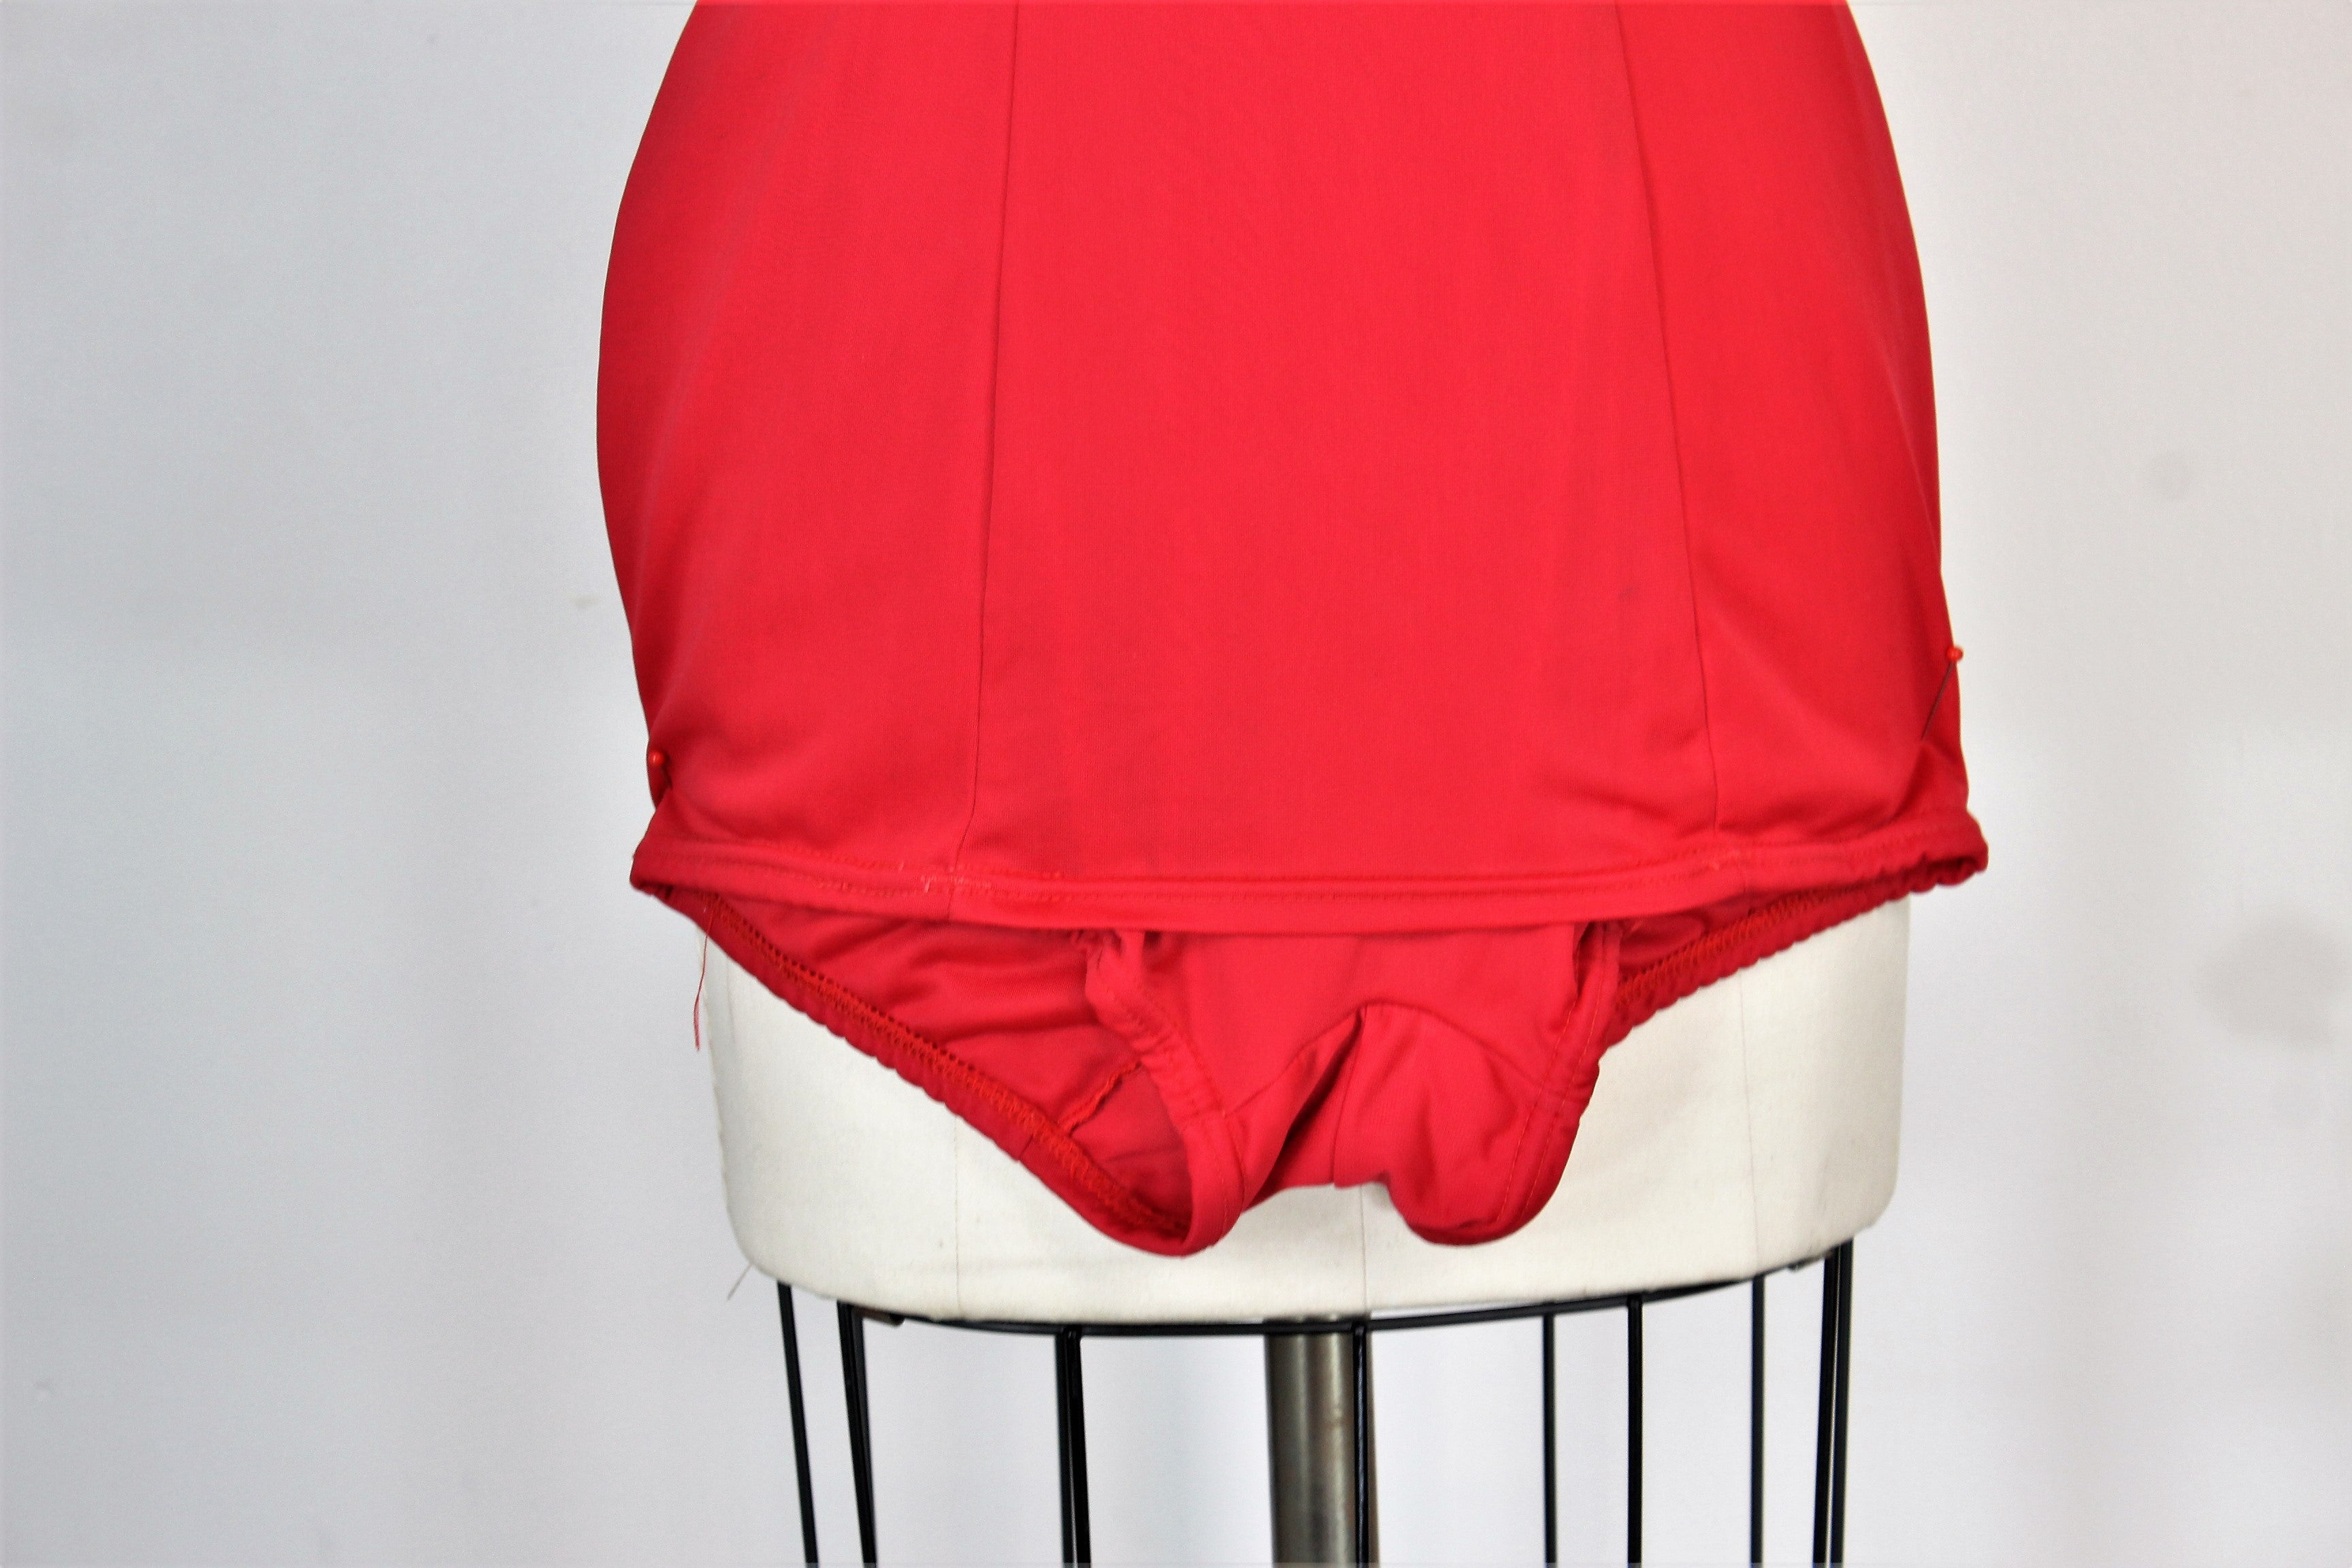 Vintage 1960s Red Swimsuit by Aldrich & Aldrich